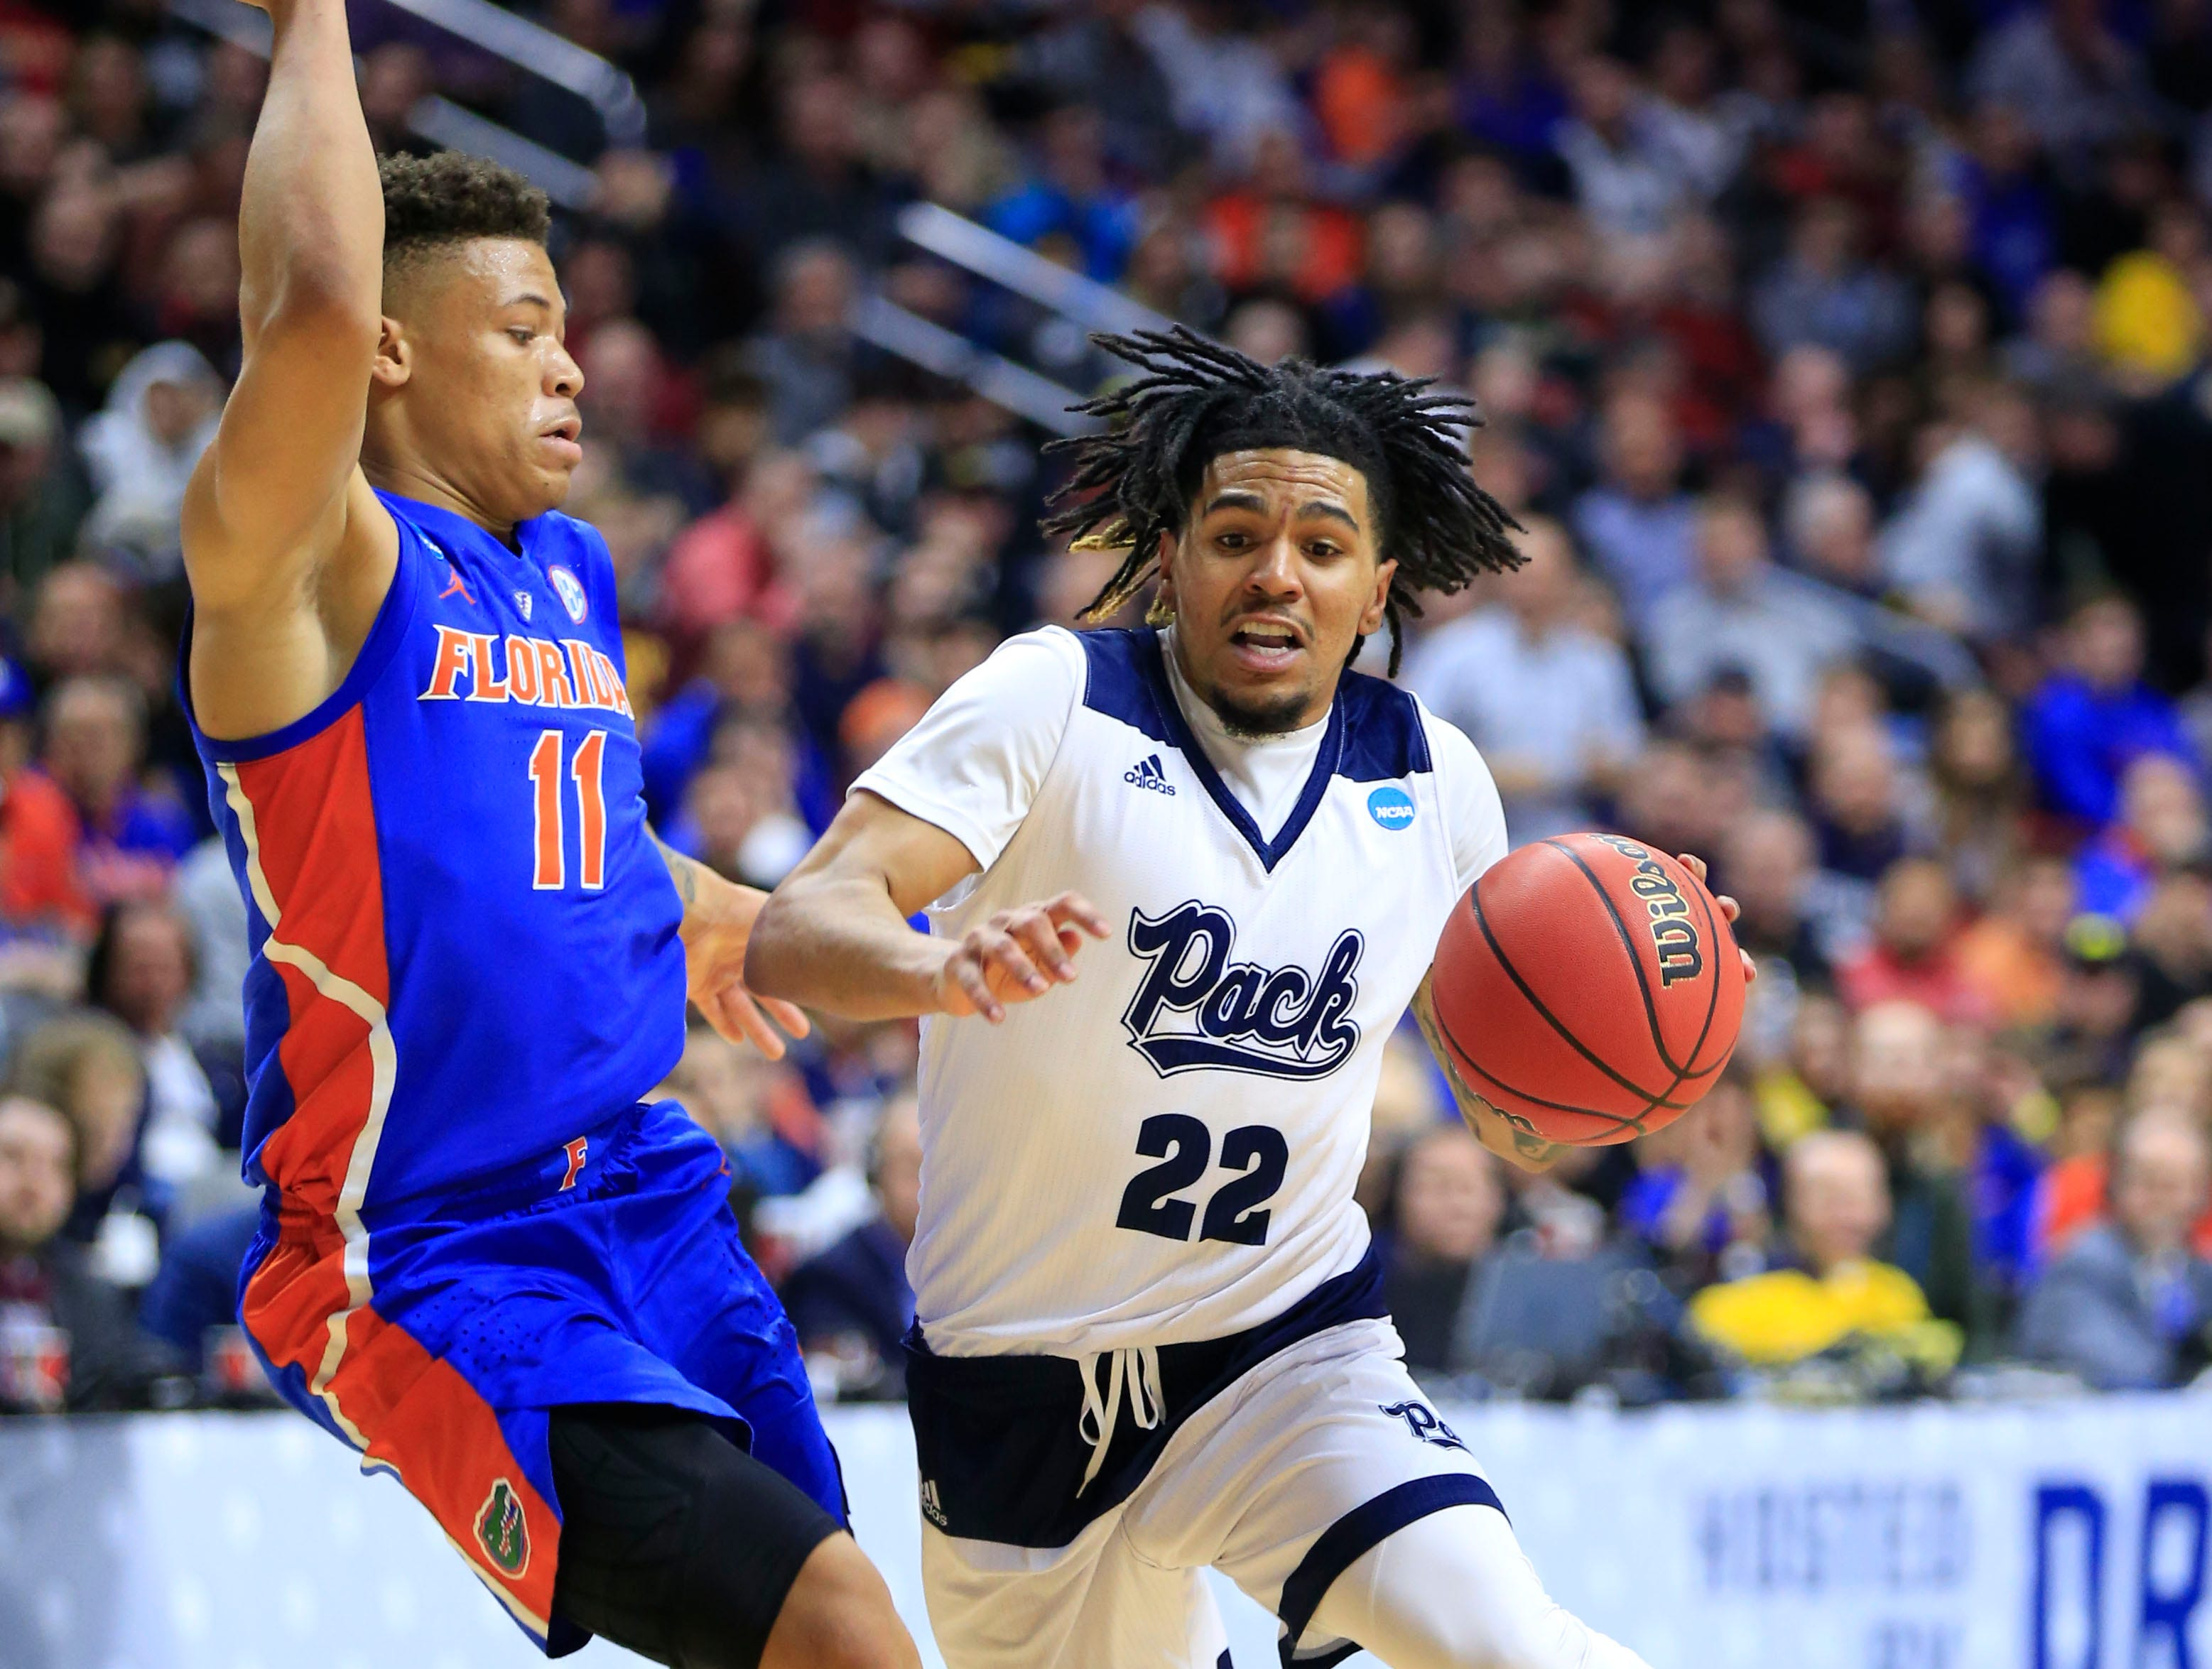 Nevada guard Jazz Johnson drives to the basket as Florida forward Keyontae Johnson defends during their NCAA Division I Men's Basketball Championship First Round game on Thursday, March 21, 2019 in Des Moines.